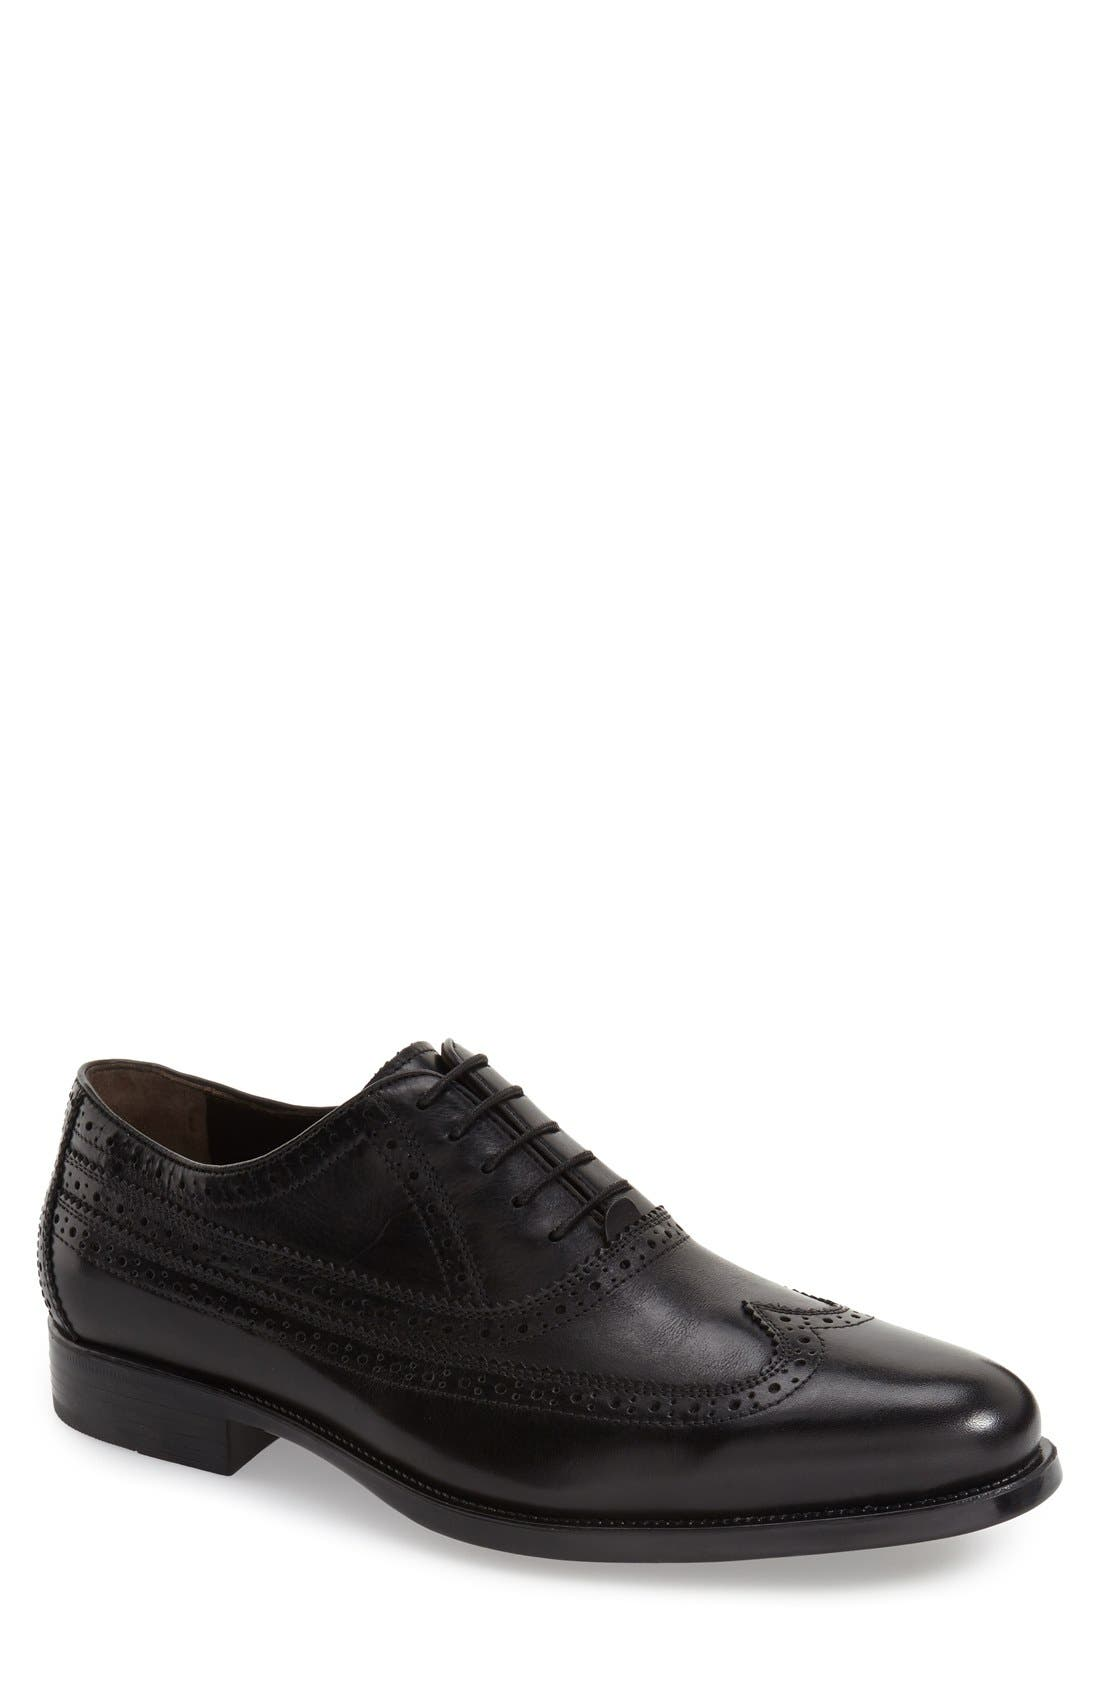 'Duvall' Wingtip,                         Main,                         color, 001